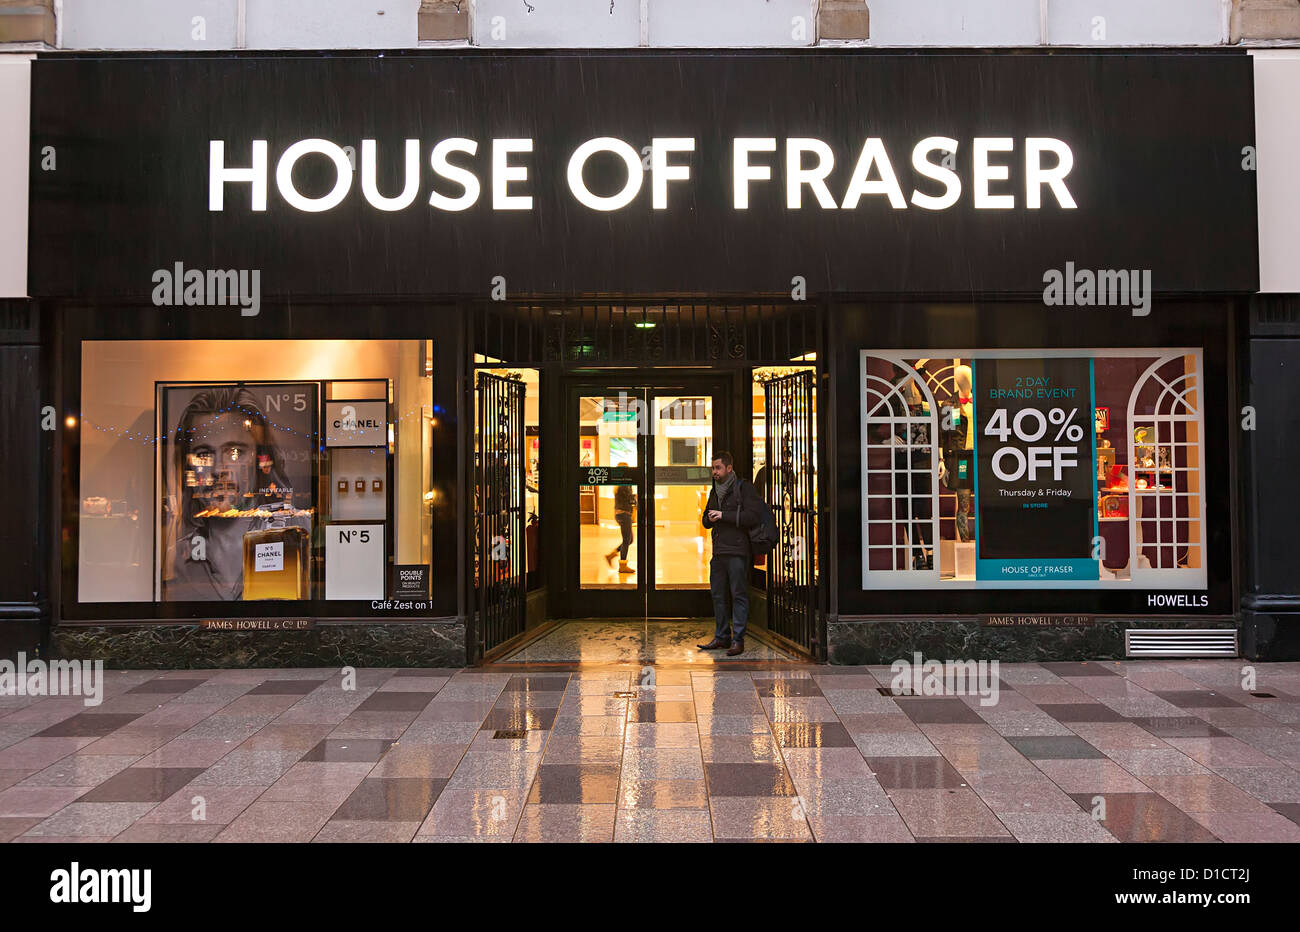 House of fraser shop front with sale sign cardiff wales for Housse of fraser